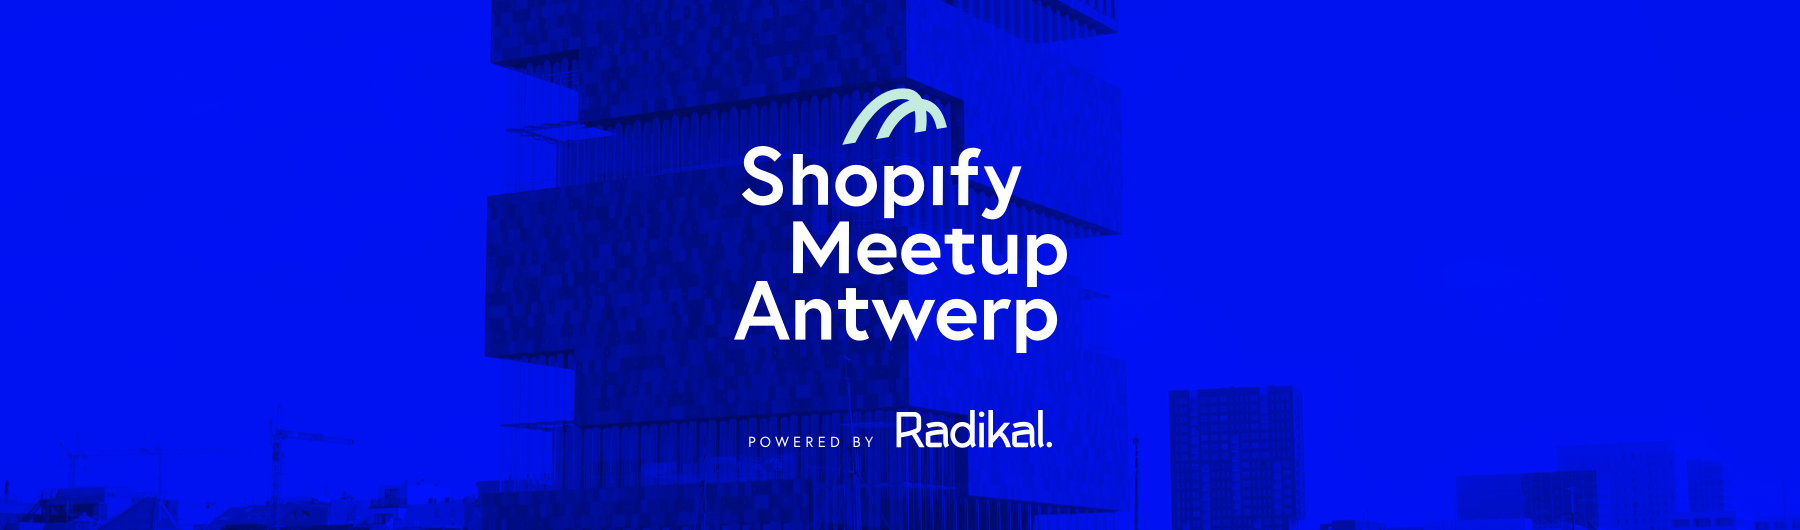 Shopify Meetup Antwerp | Hosted by Radikal